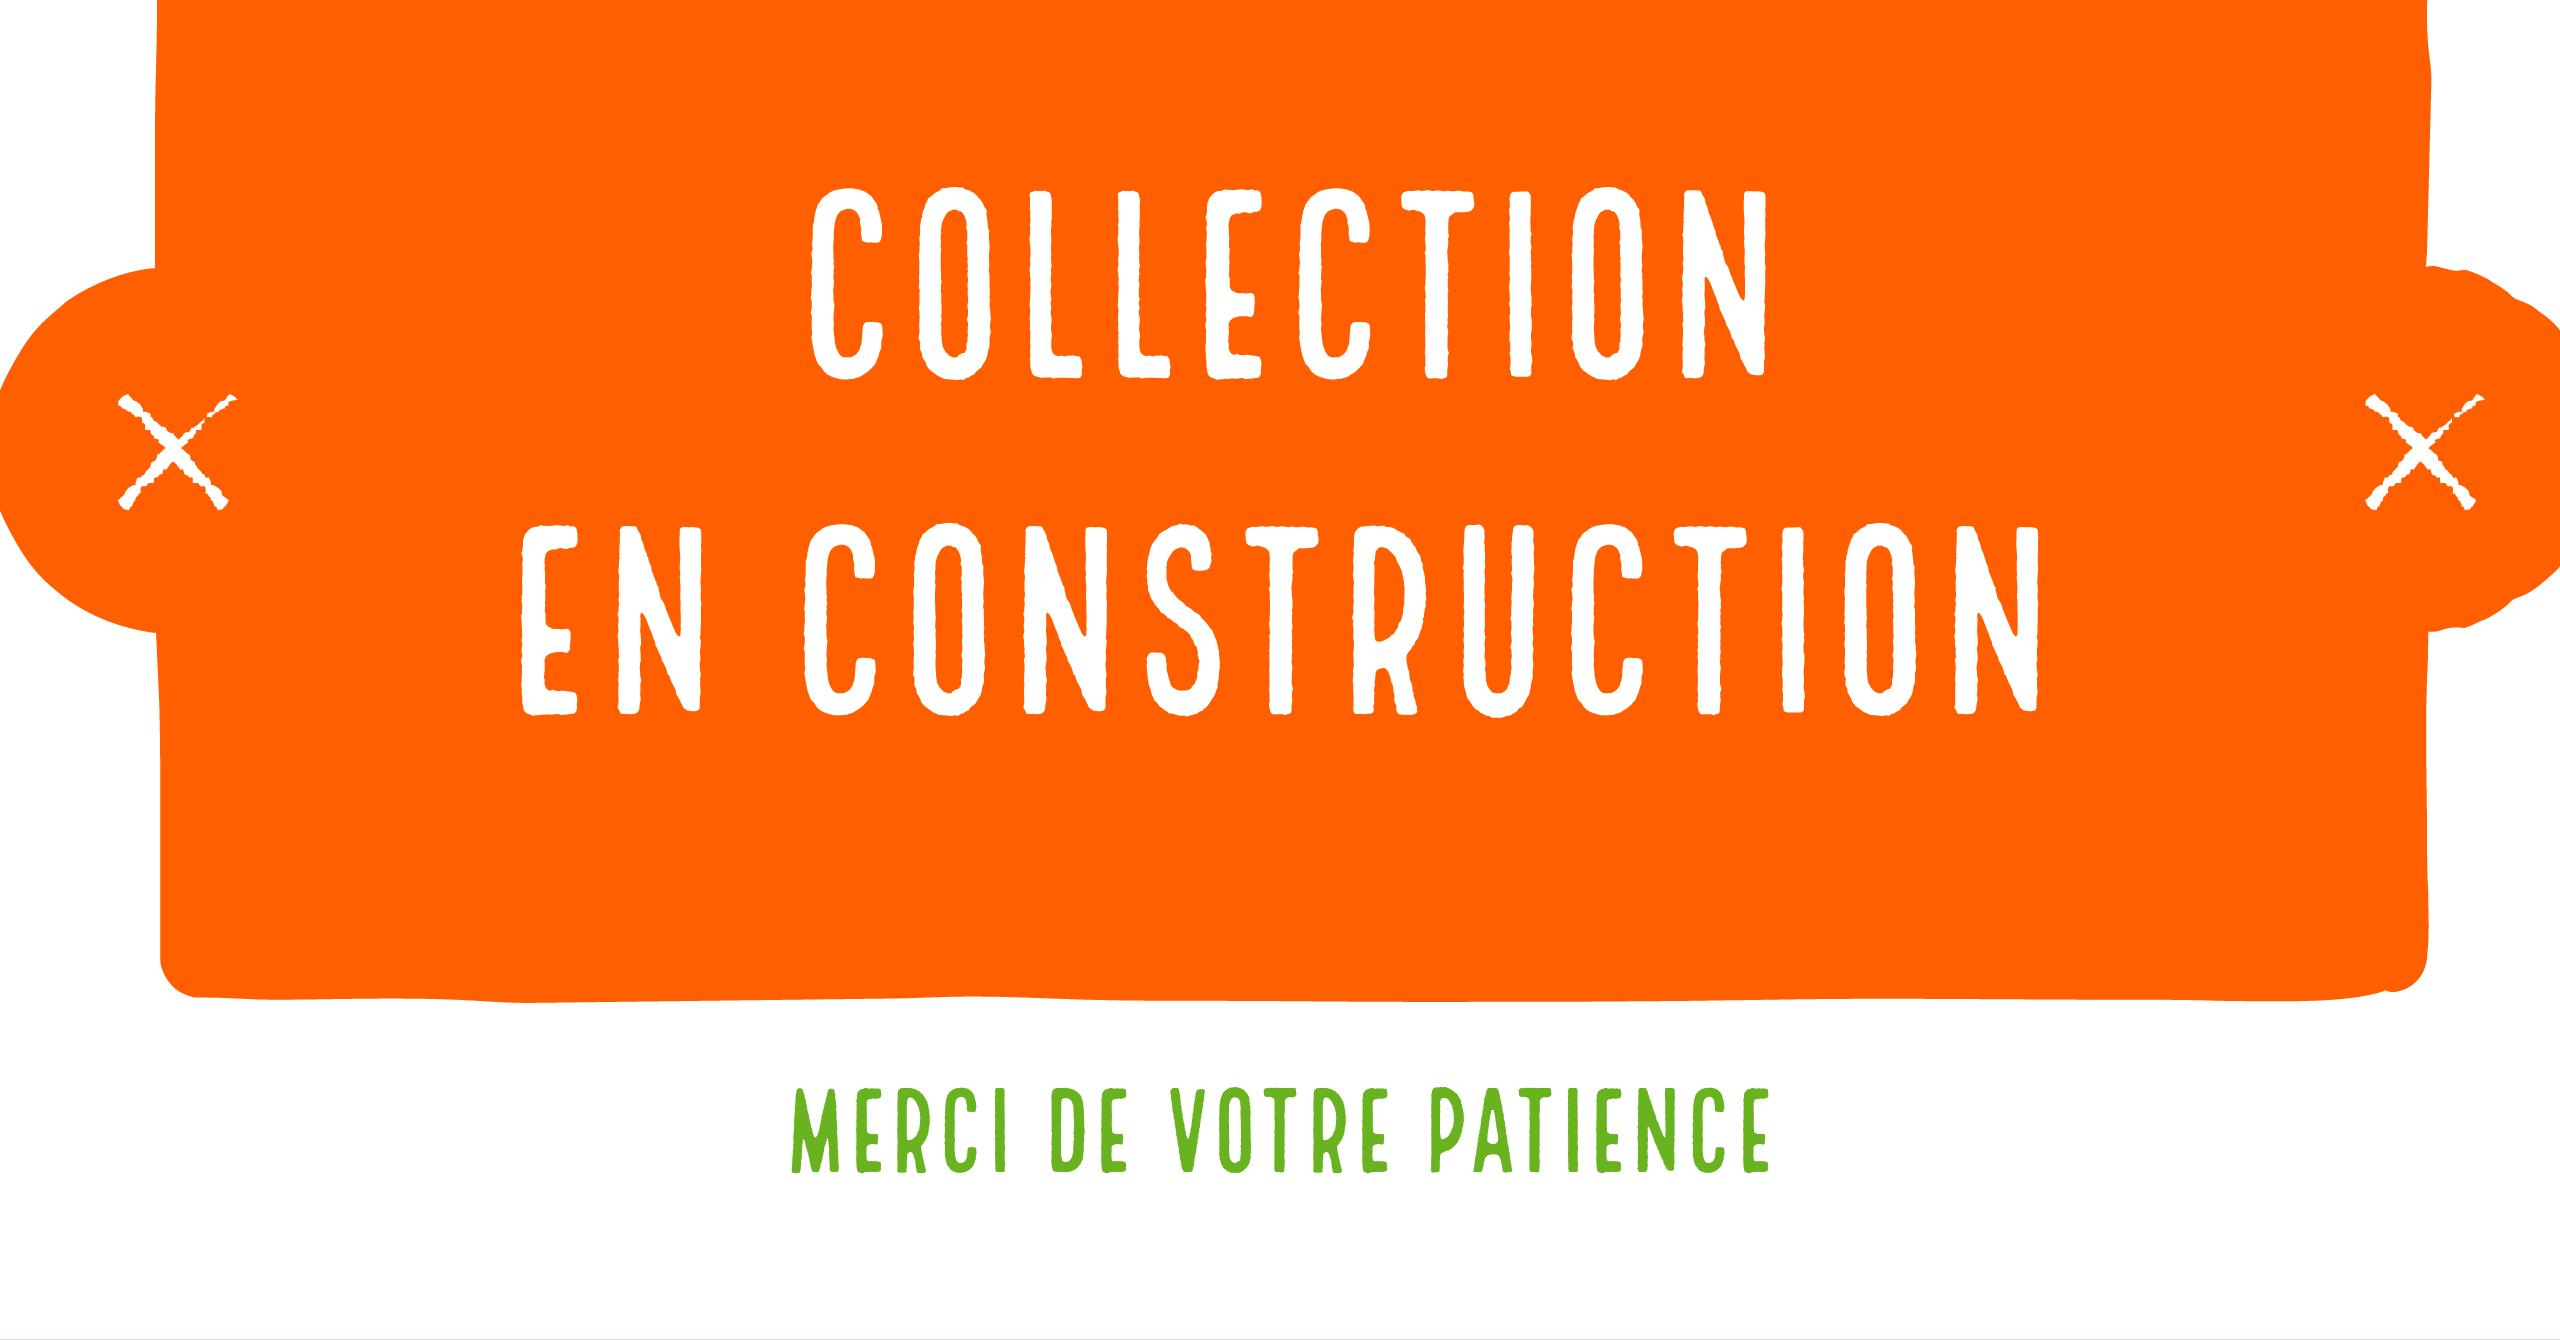 Collection en construction